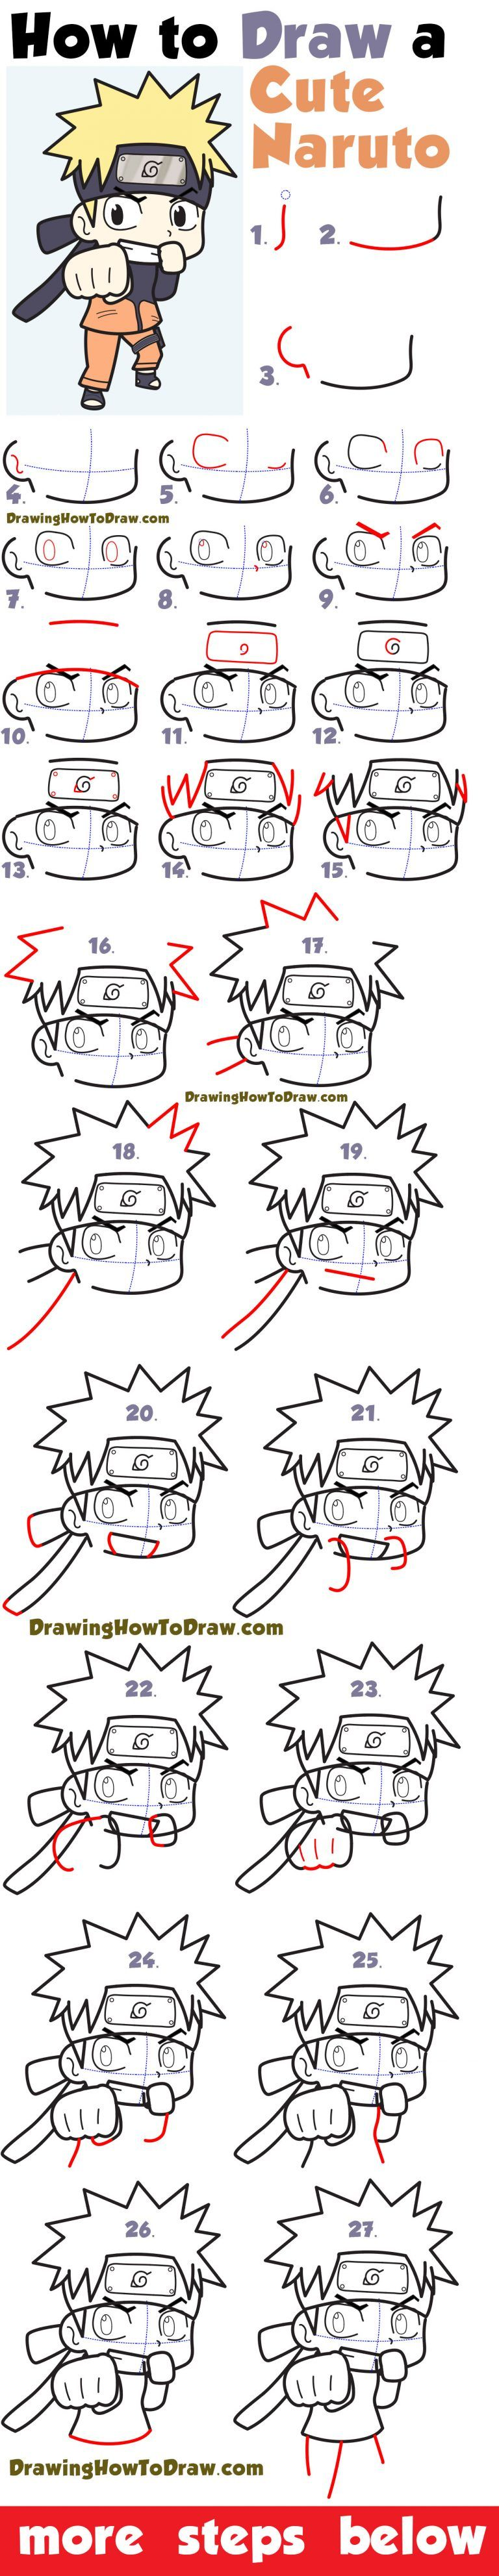 How To Draw A Cute Chibi Naruto Easy Step By Step Drawing Tutorial